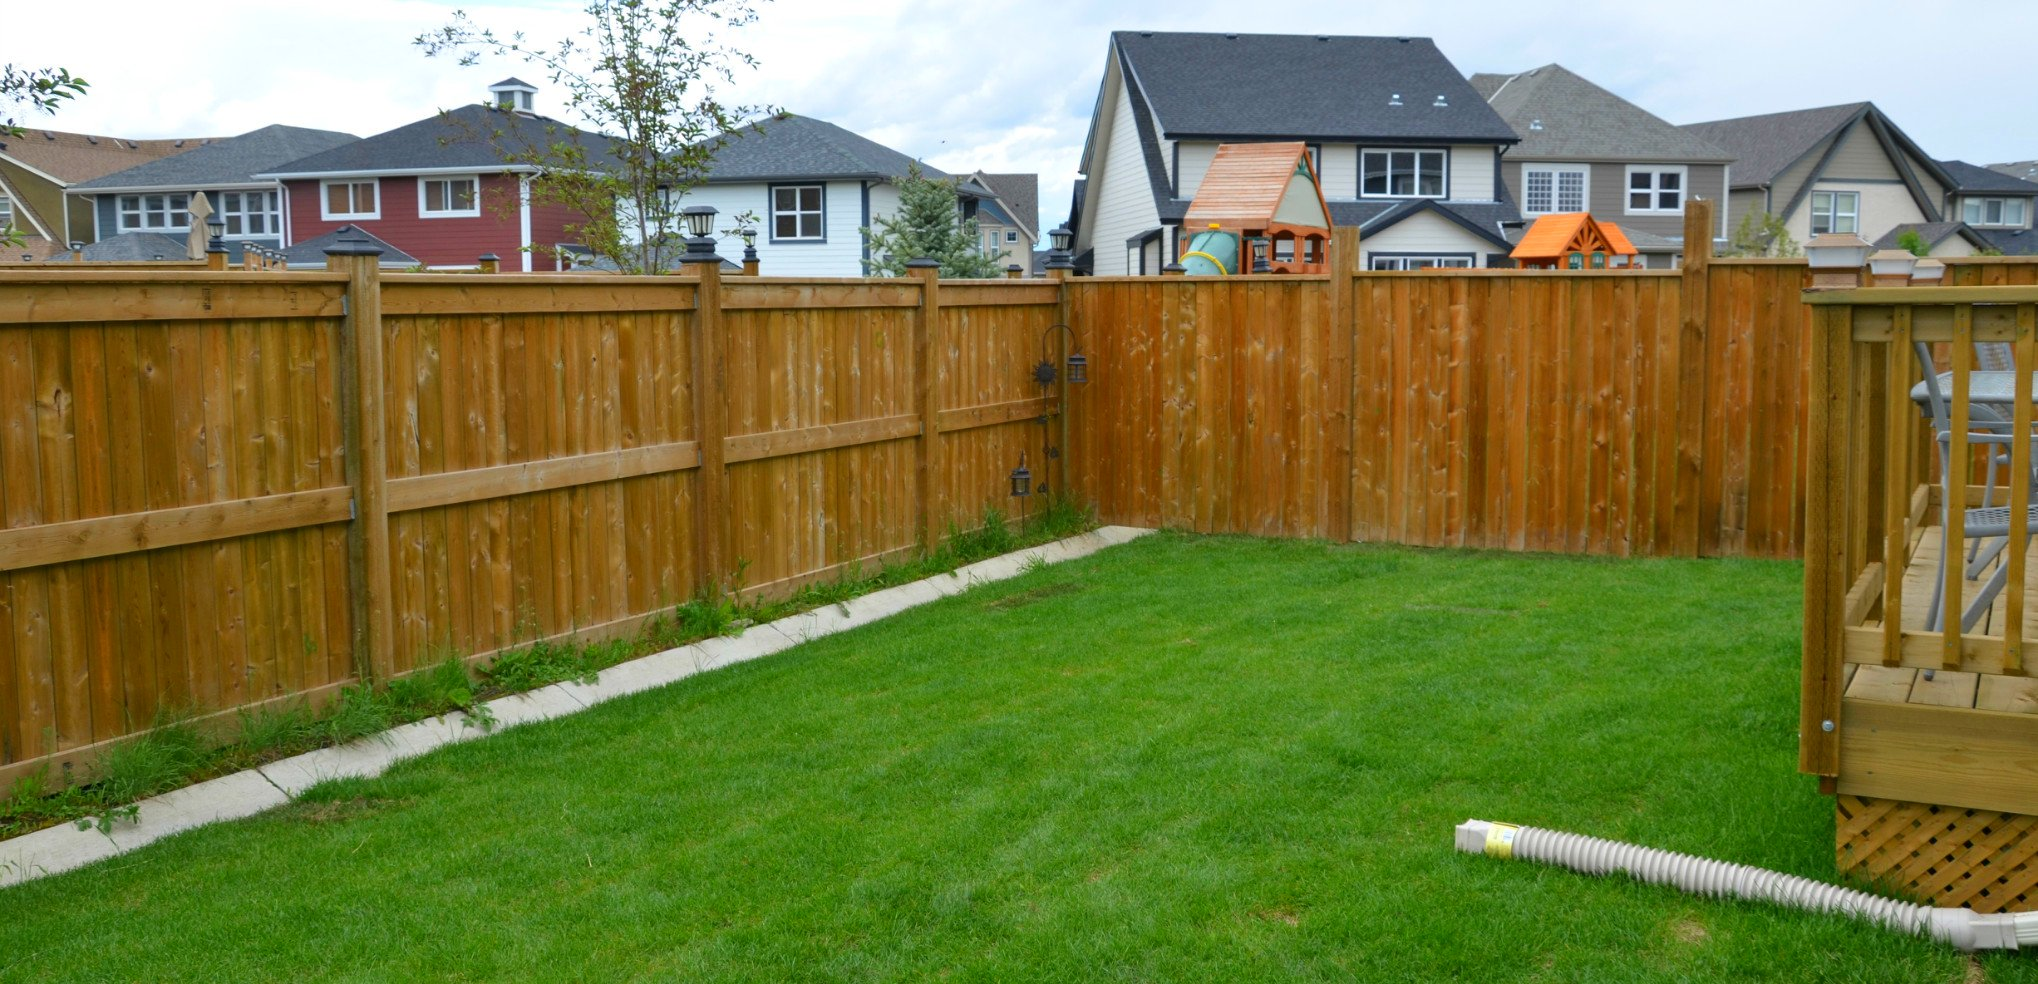 fences - pressure treated fortress style fence with post caps